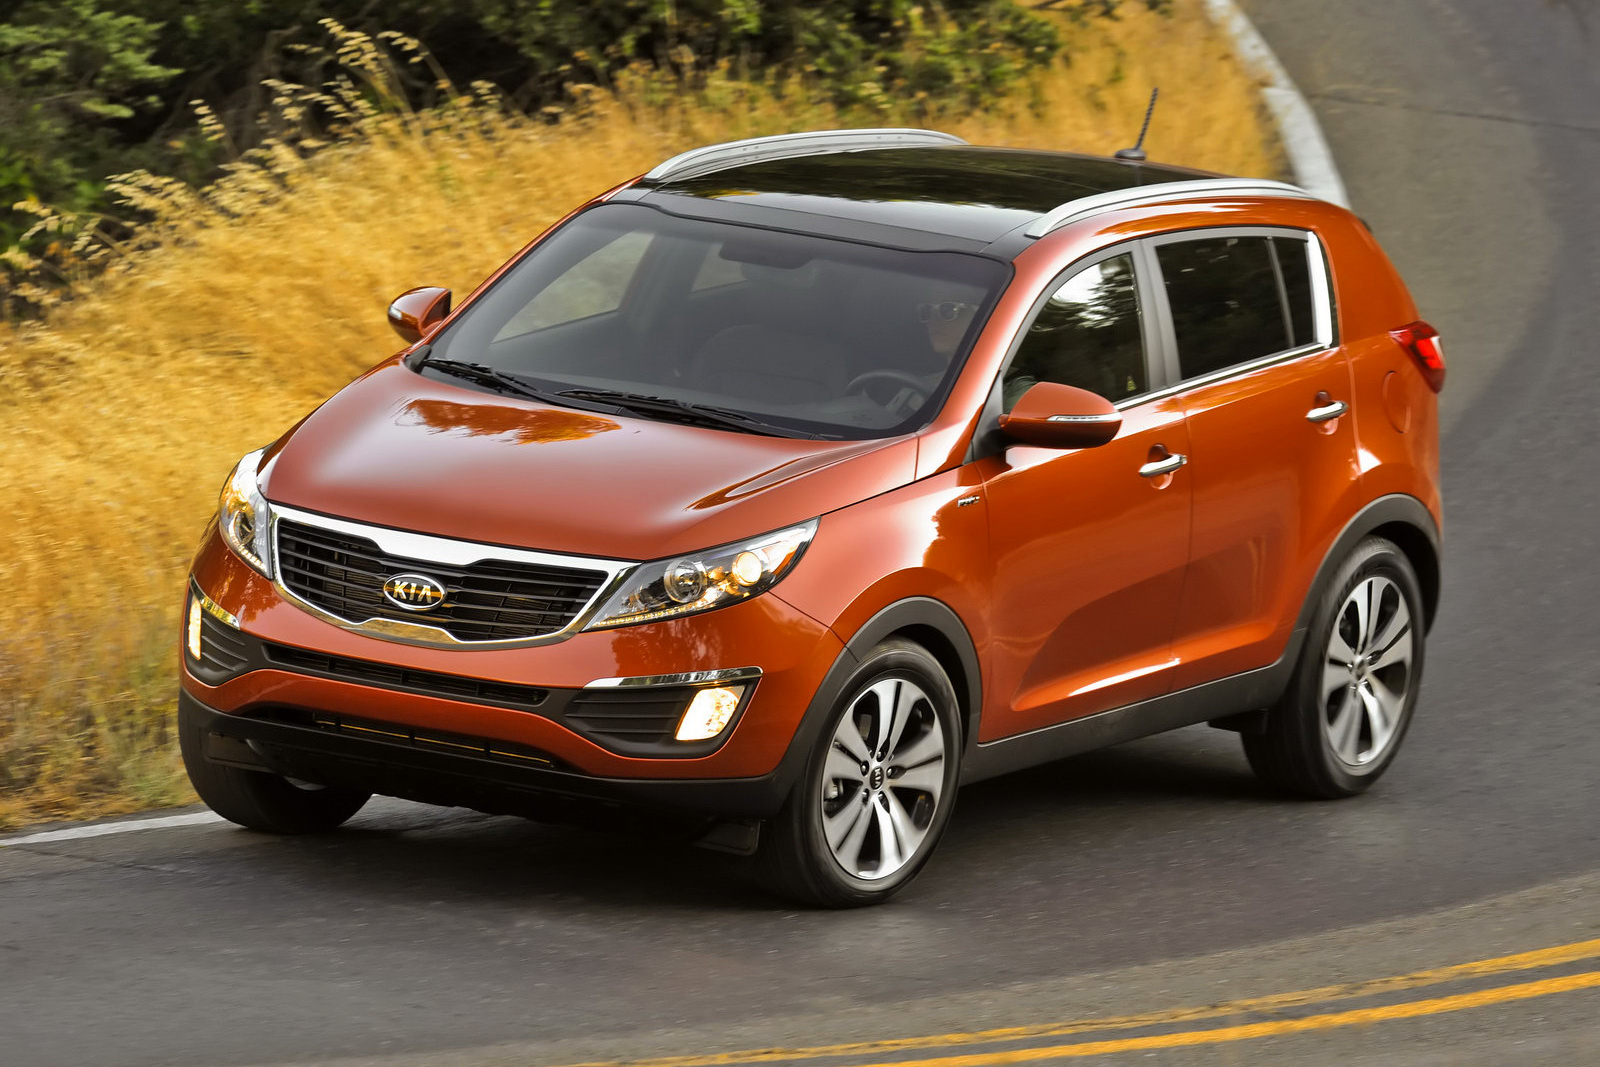 Carscoop: 2011 Kia Sportage Pricing Released, Starts From